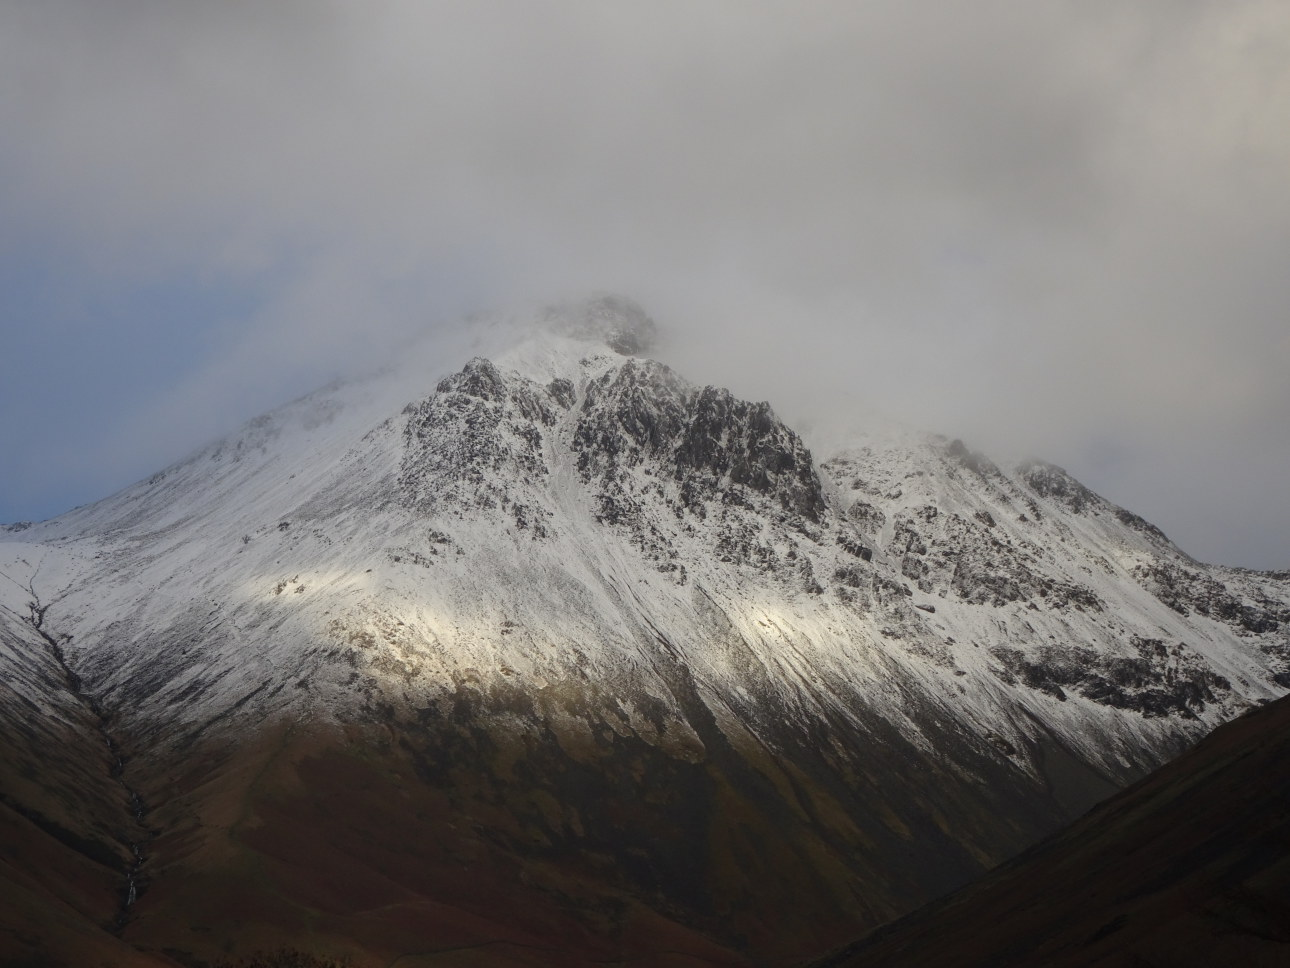 The black rocks of The Napes are revealed as the clouds rise from Great Gable.  Taken 22/1/20 at 4:36pm.